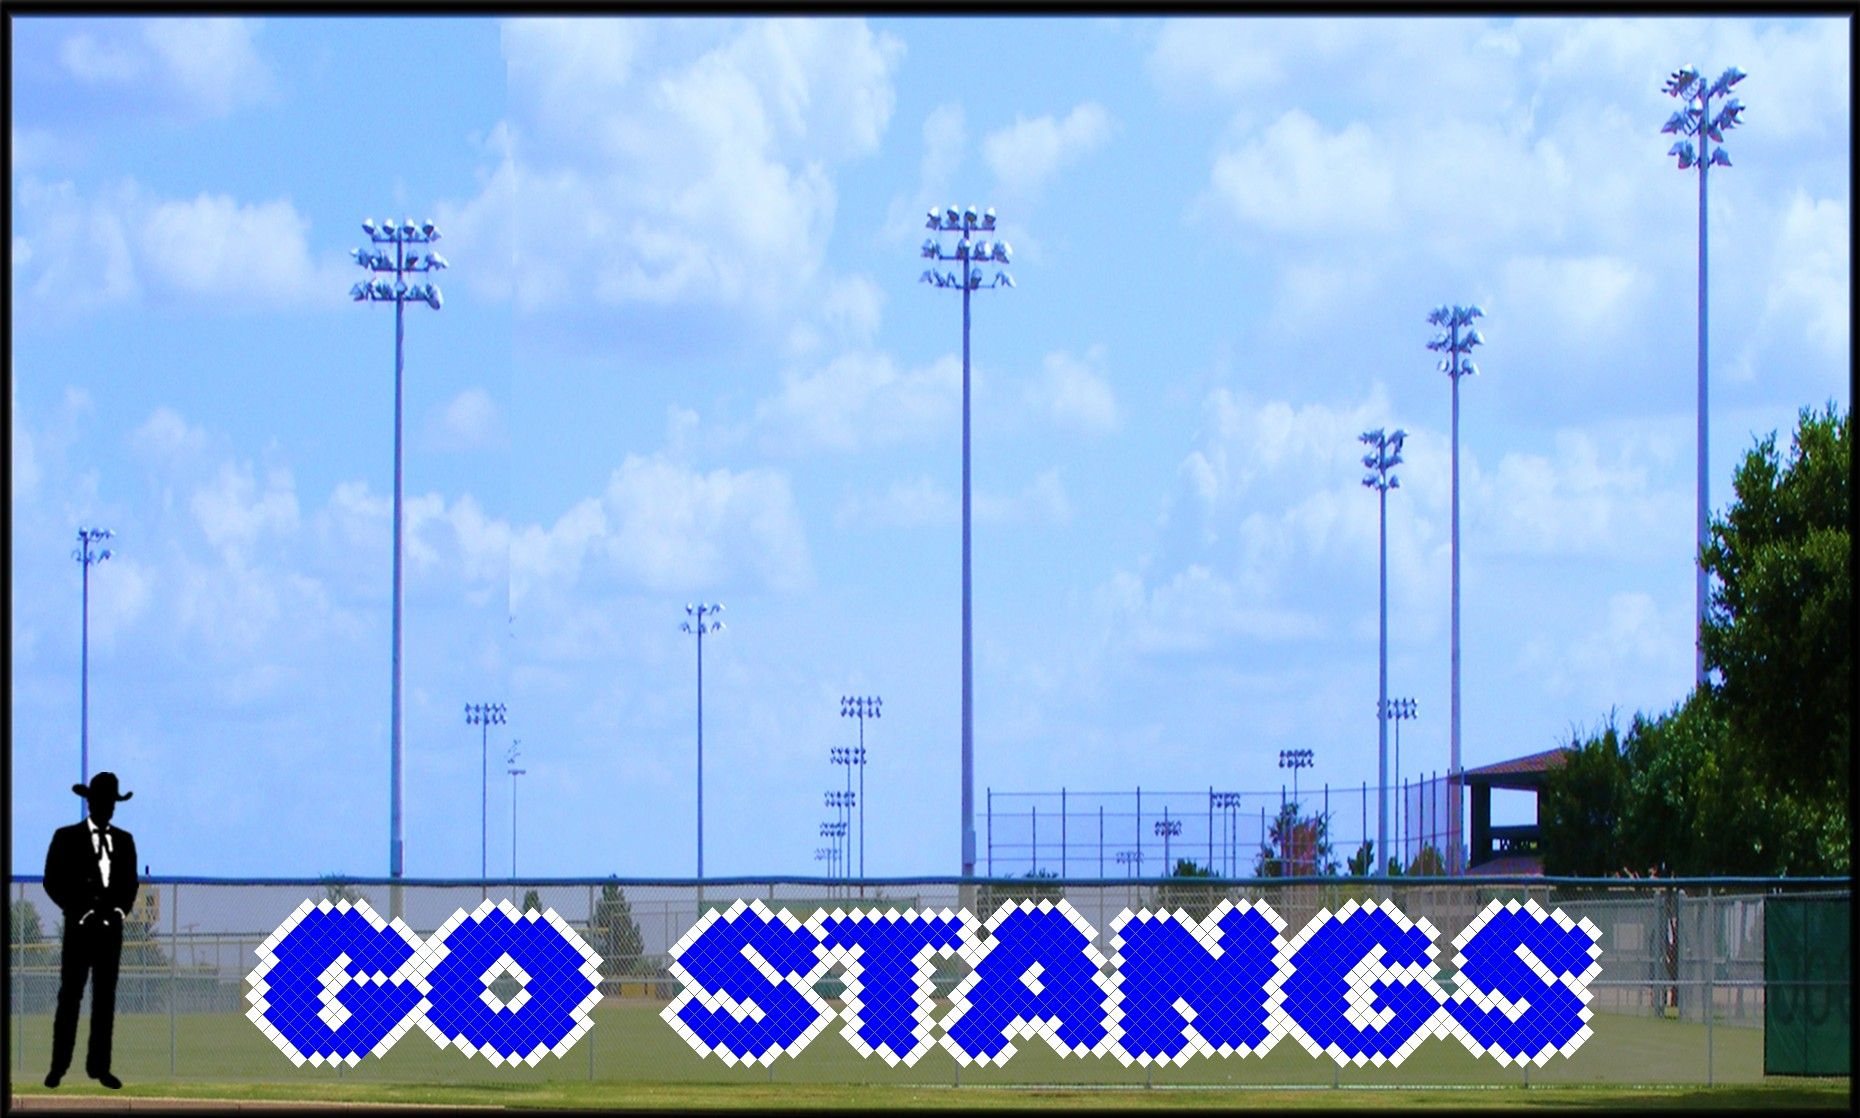 3' x 22' Go Stangs Letters